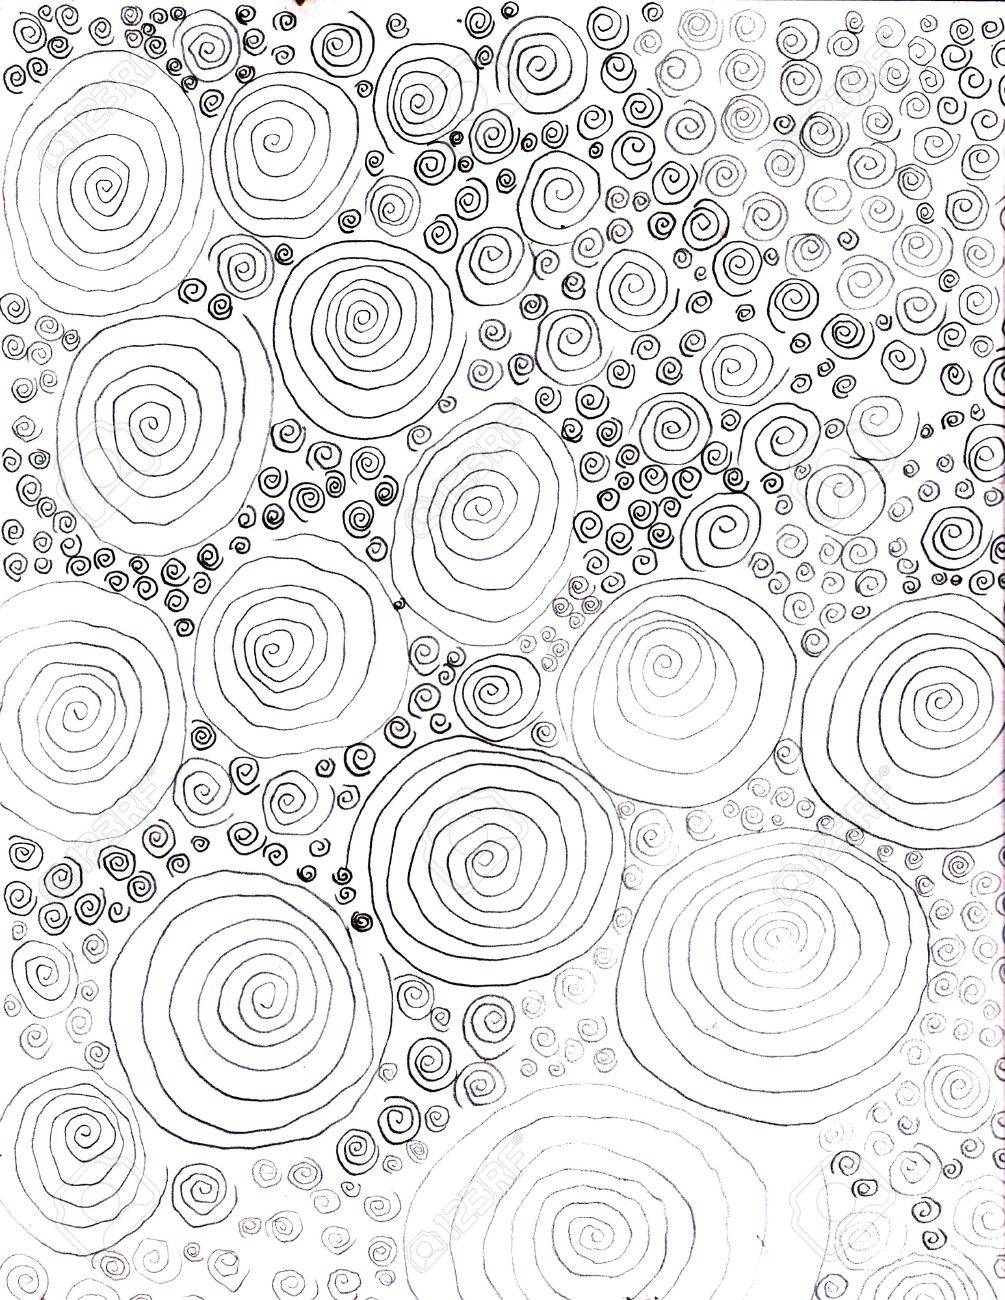 1005x1300 Abstract Obsessive Circles Drawing Stock Photo, Picture